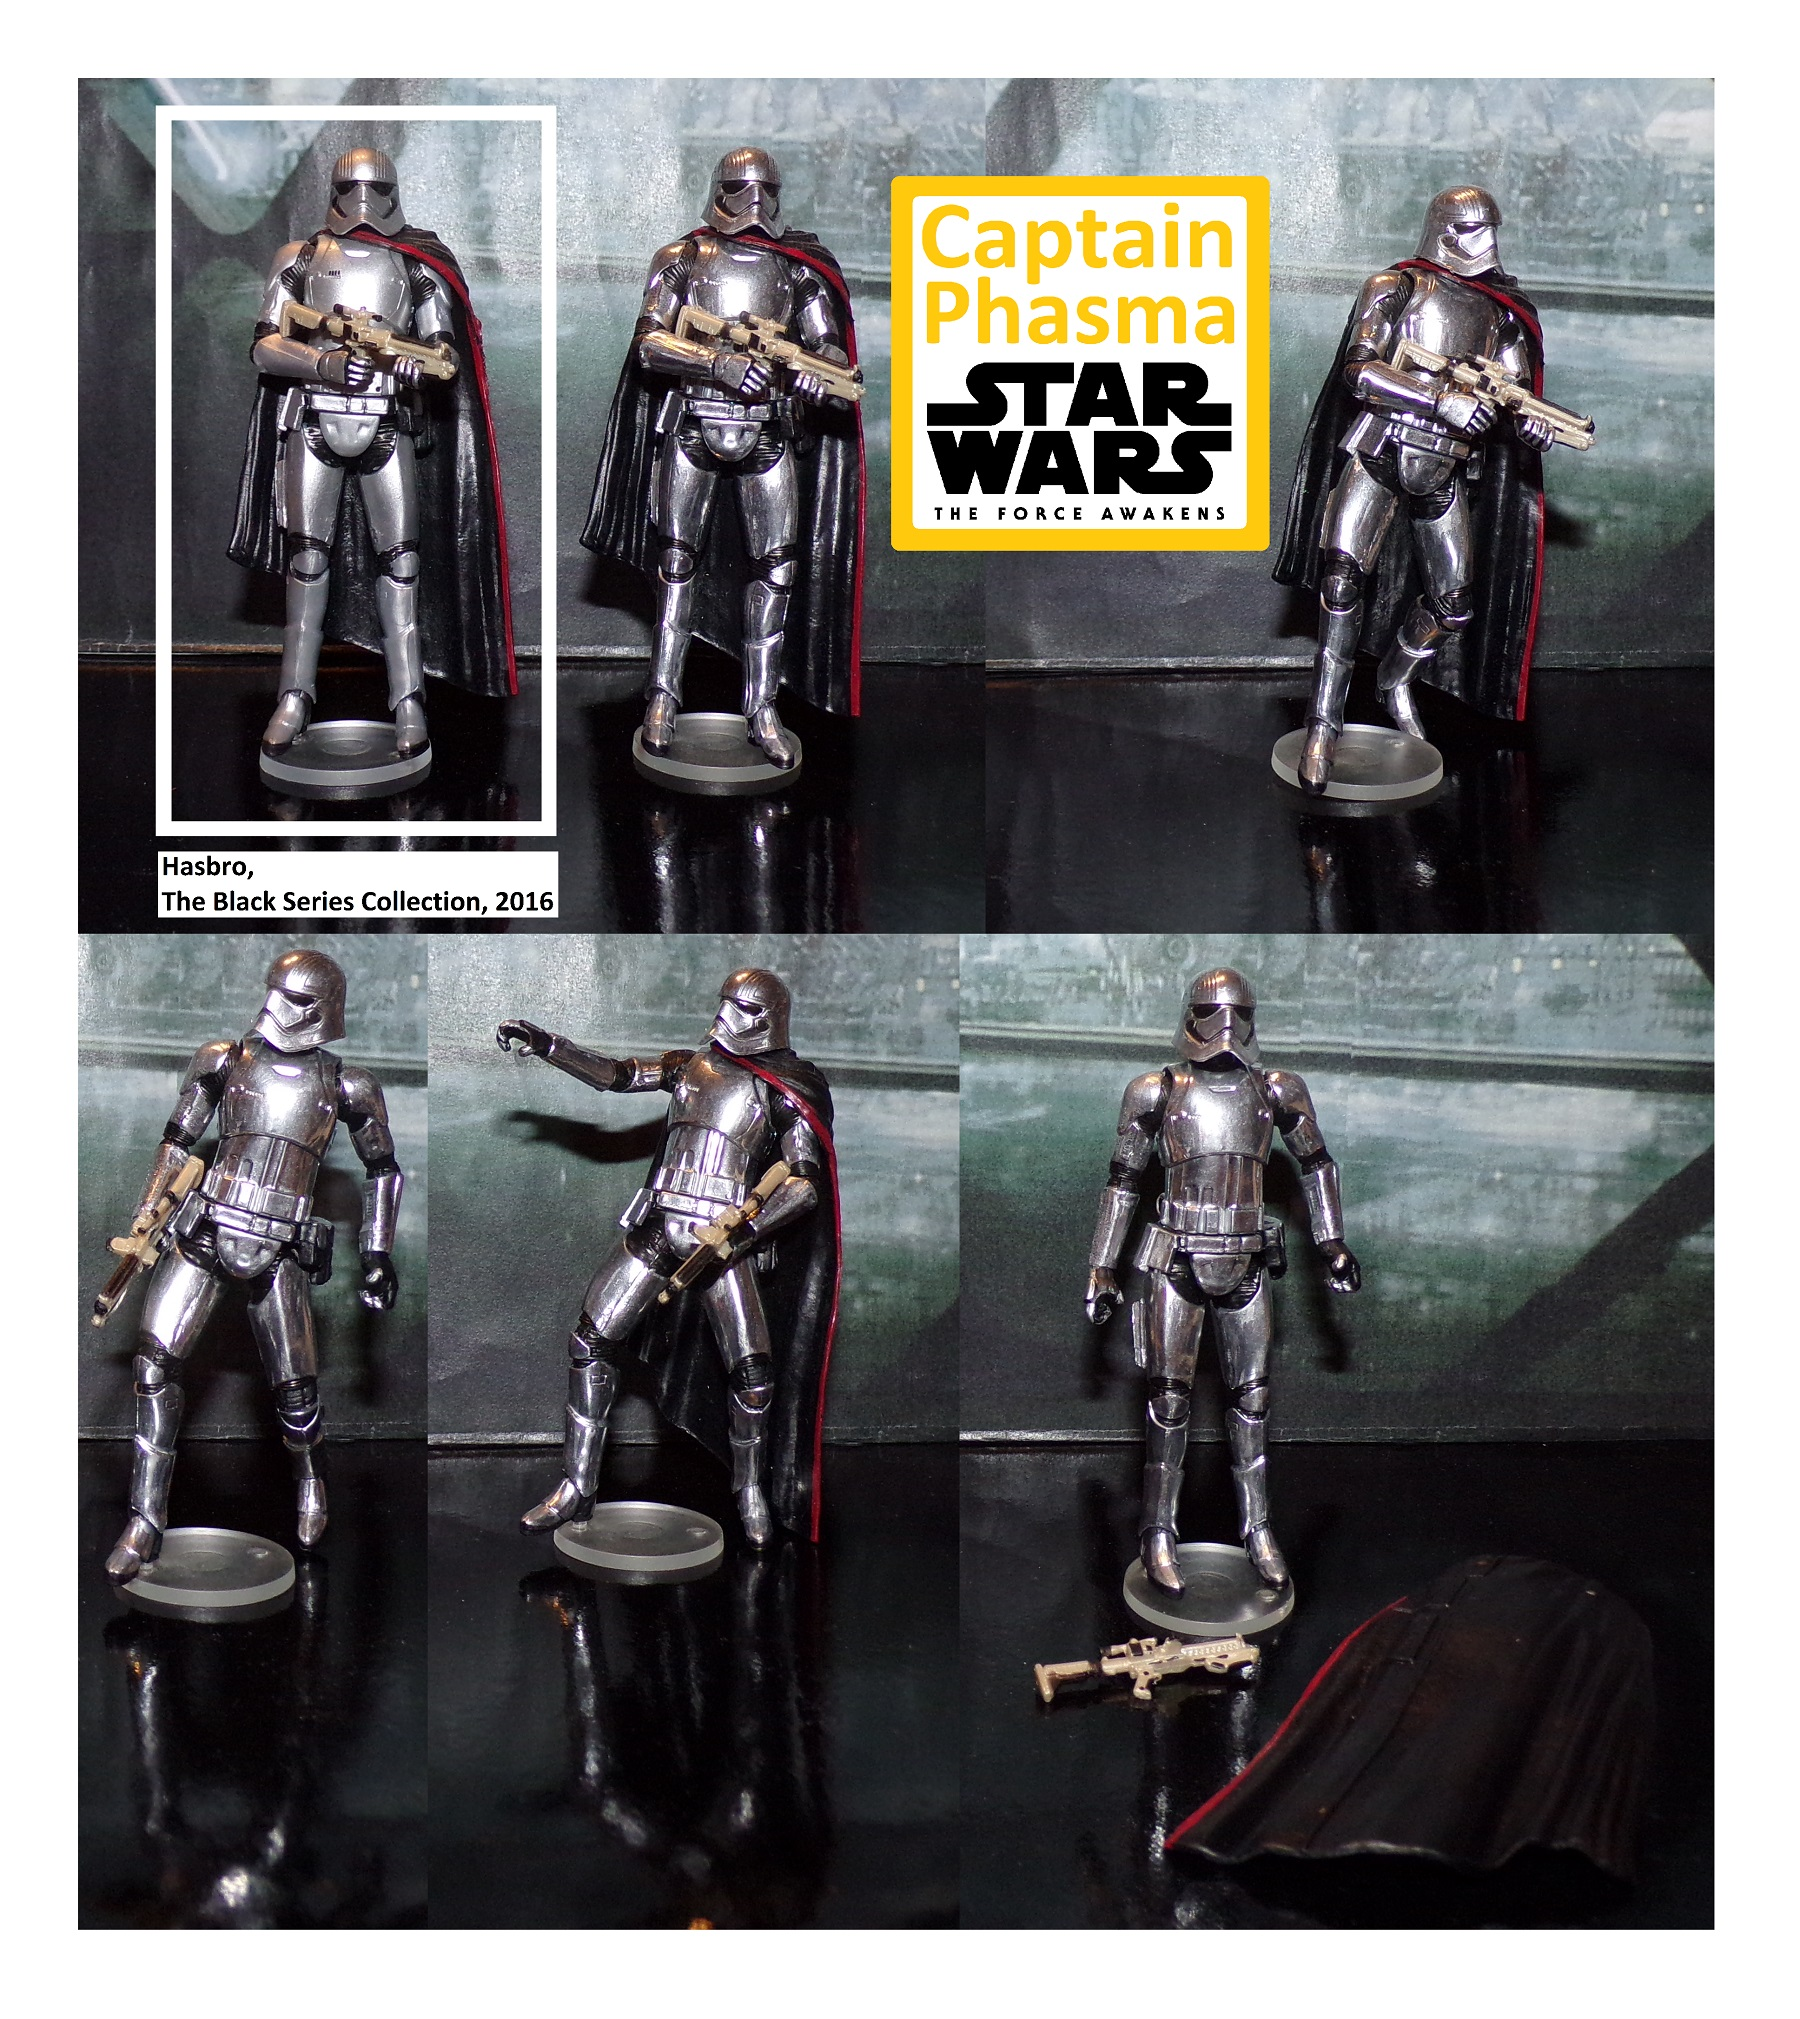 Ep 7 Captain Phasma 1.01 (1800).jpg